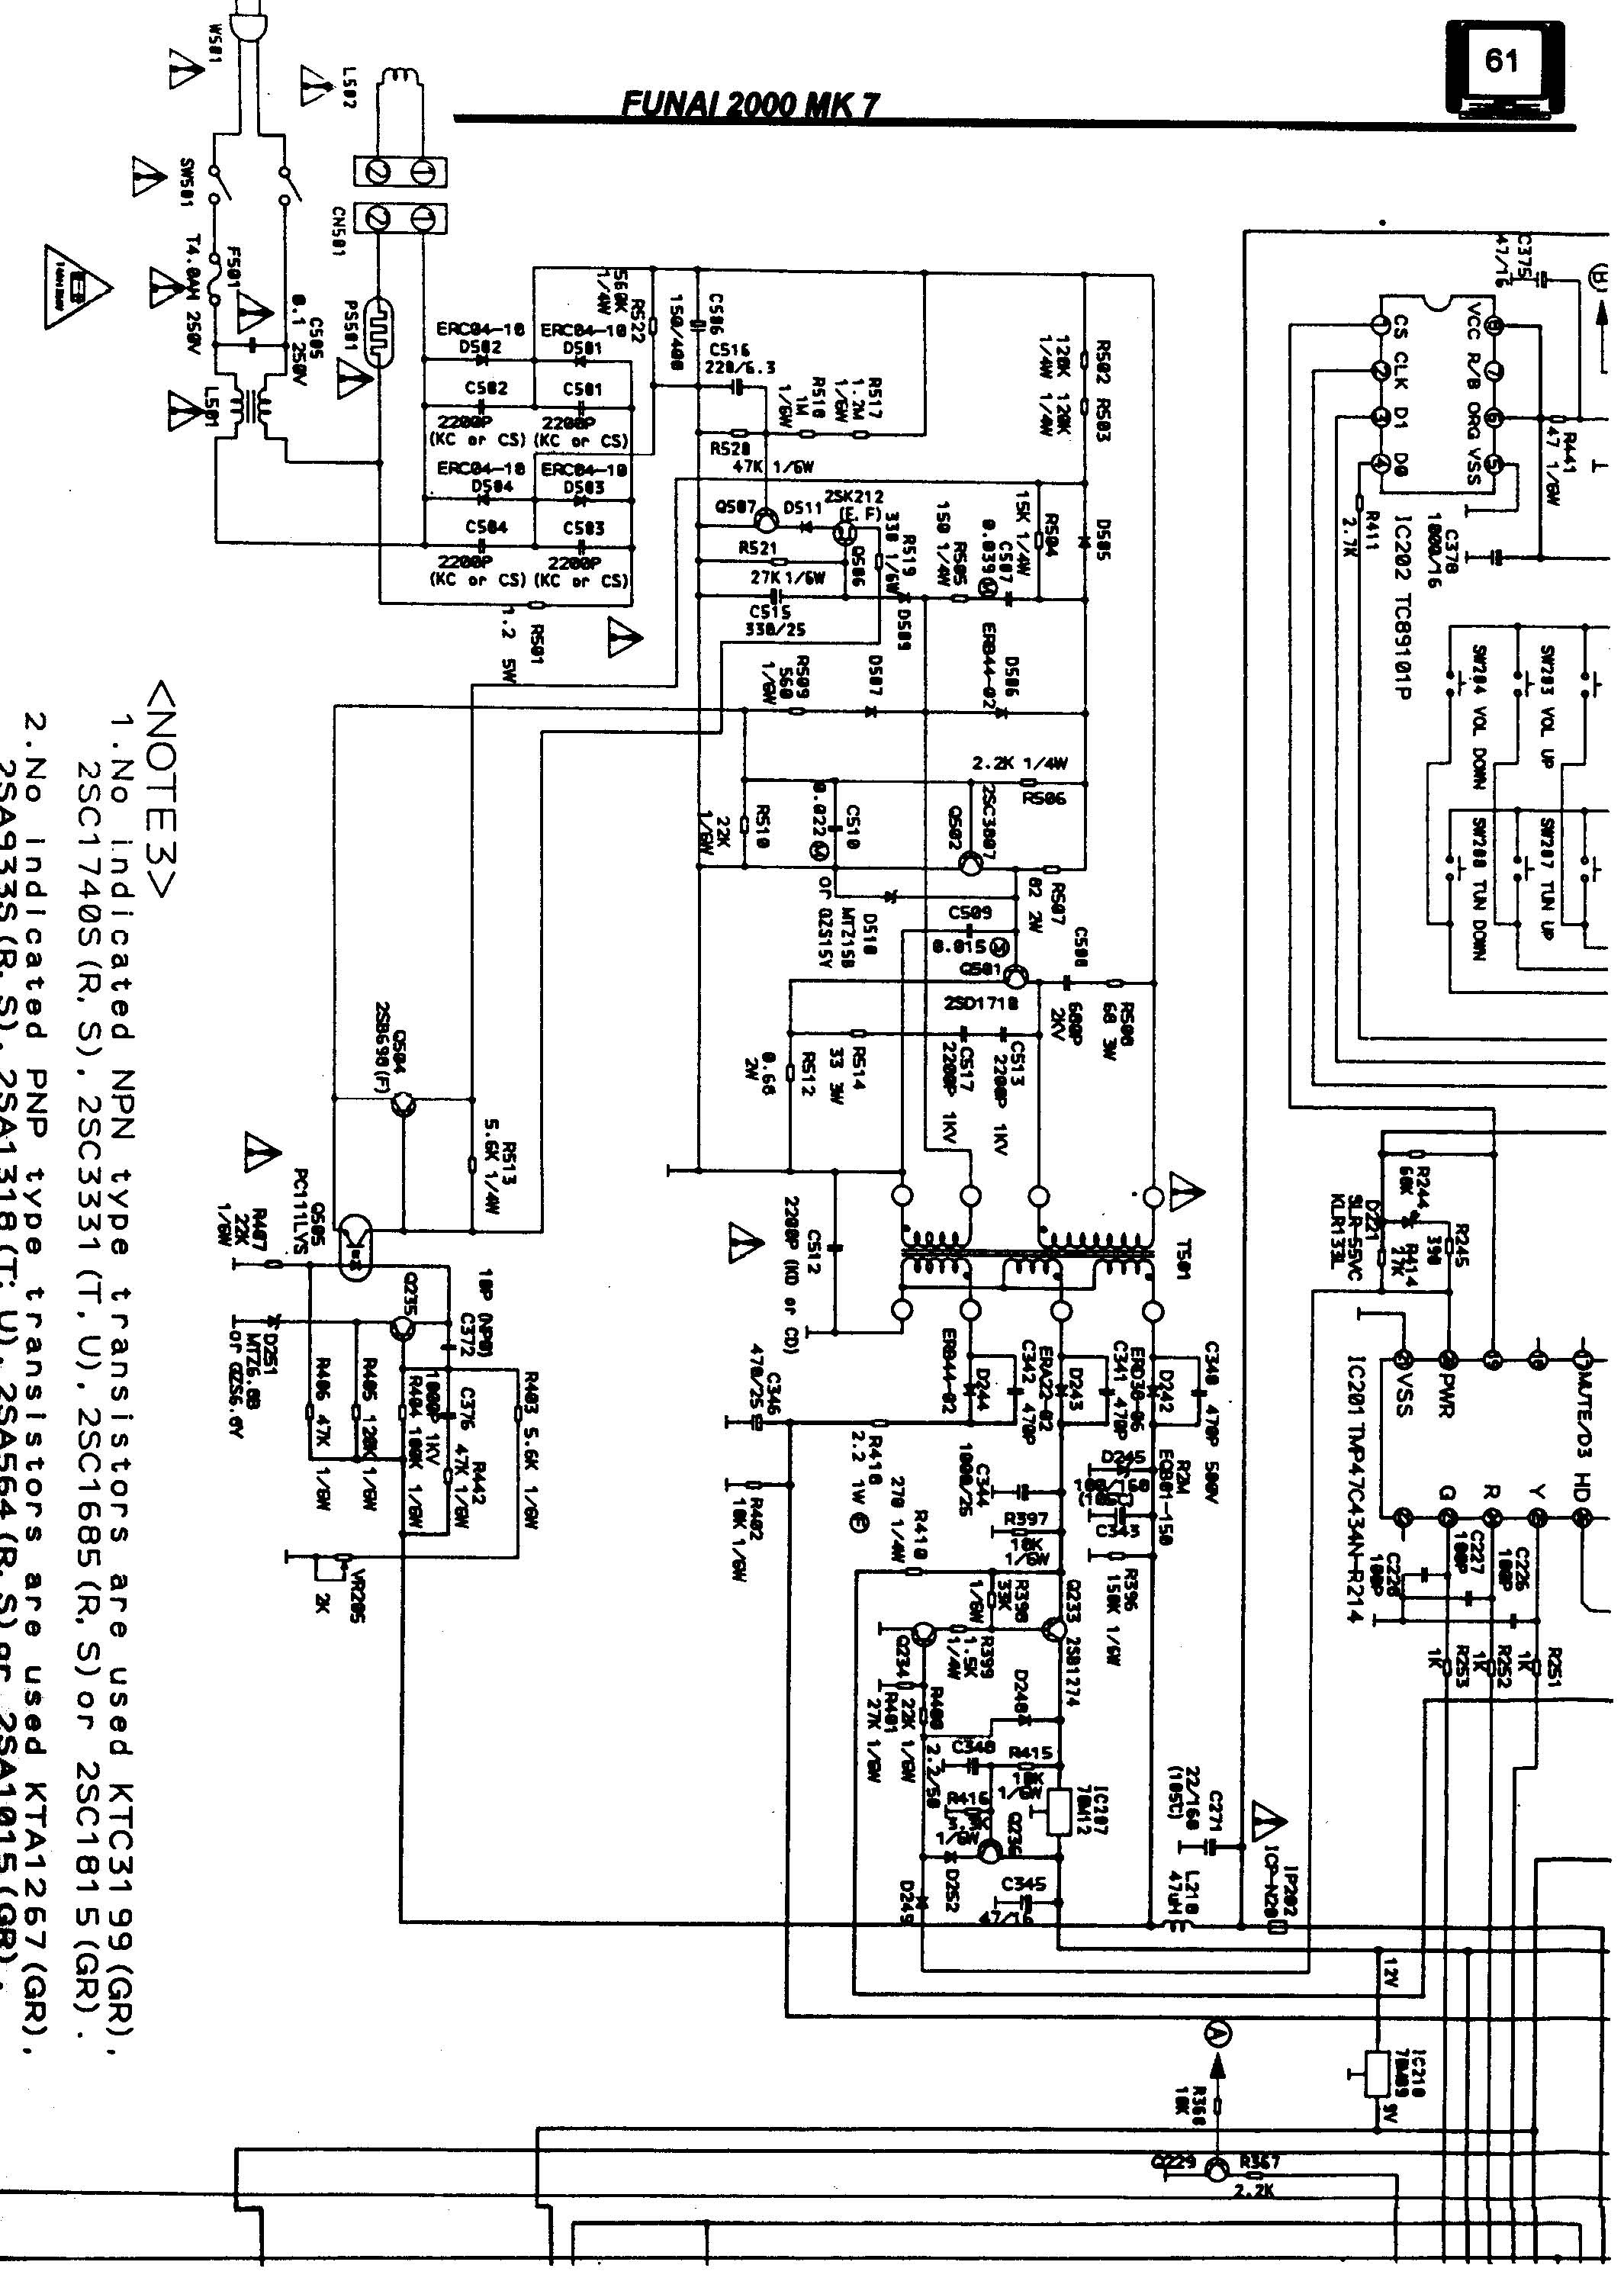 funai 2000 mk 7 schematic diagram in pdf format